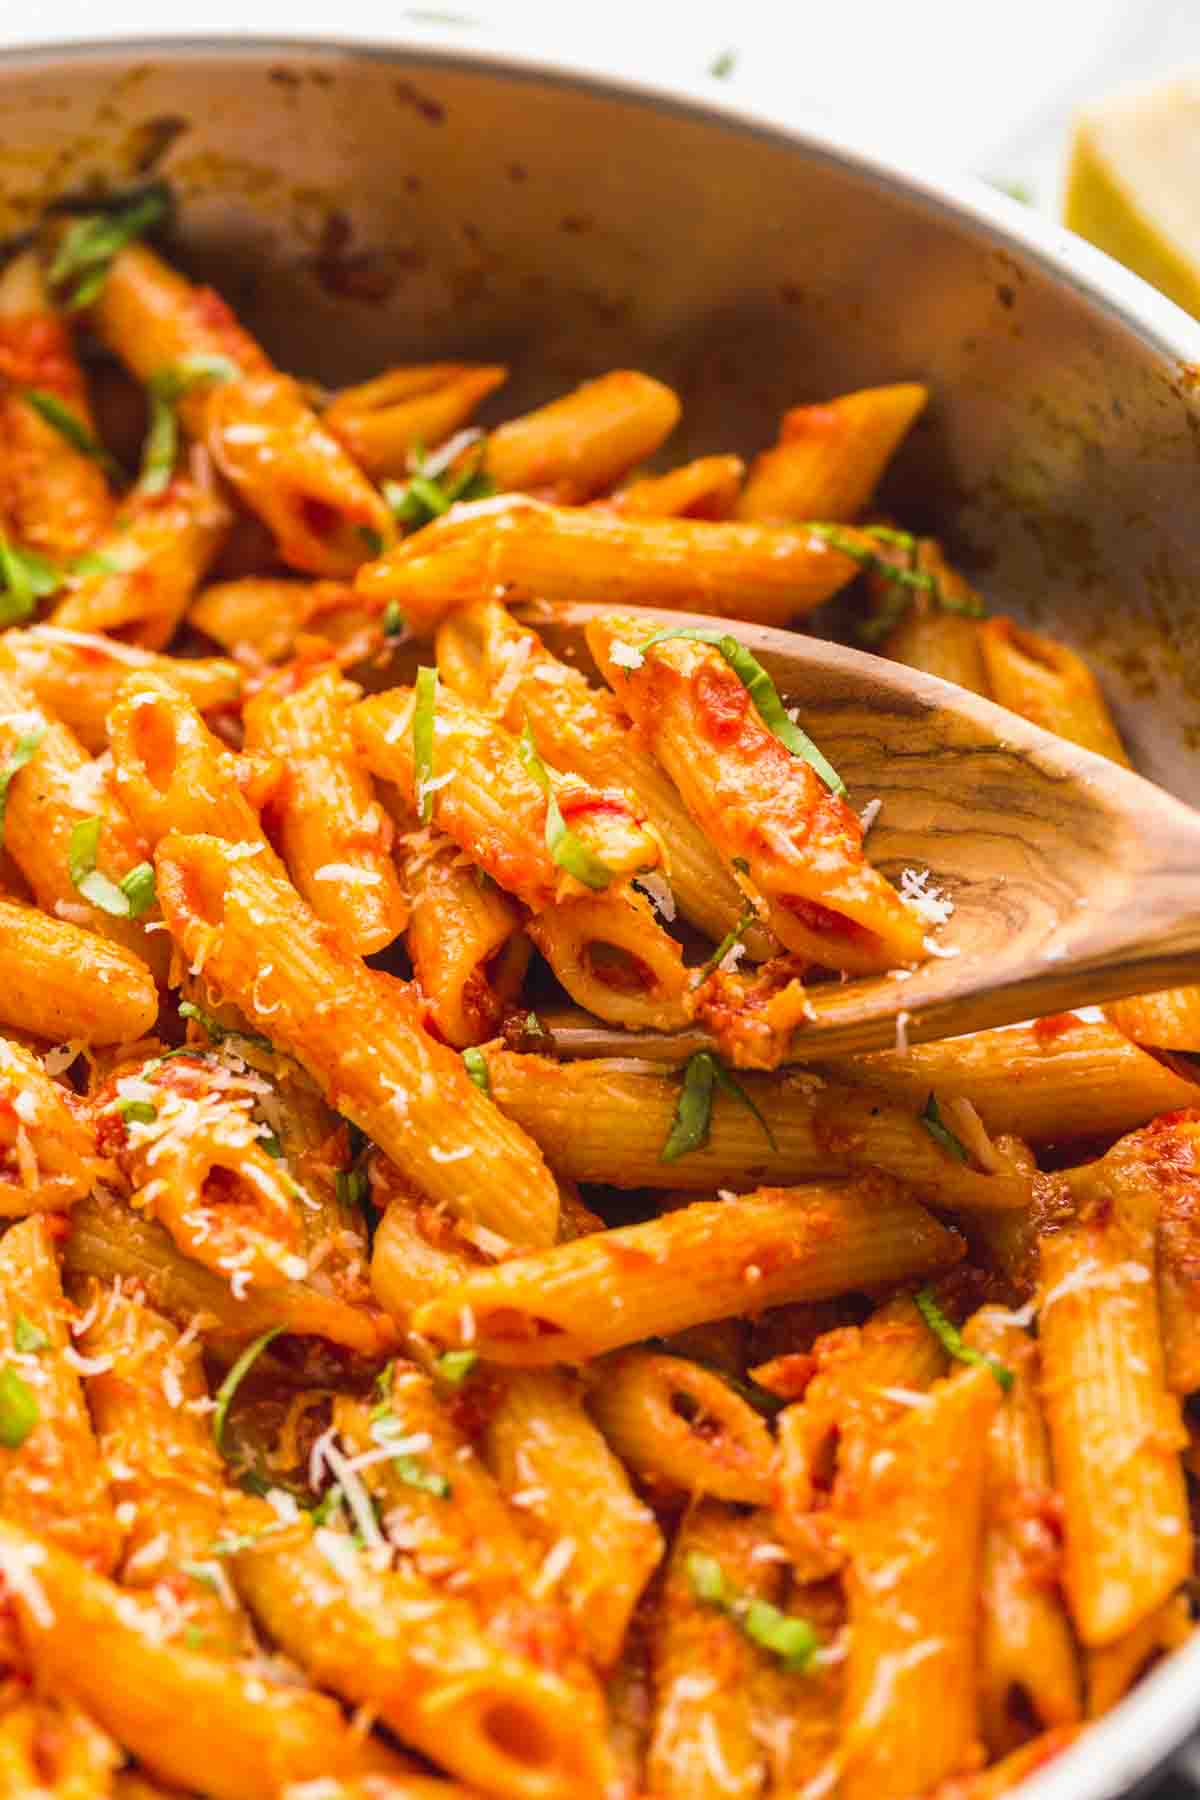 Penne Arrabbiata in a pan, with a wooden serving spoon